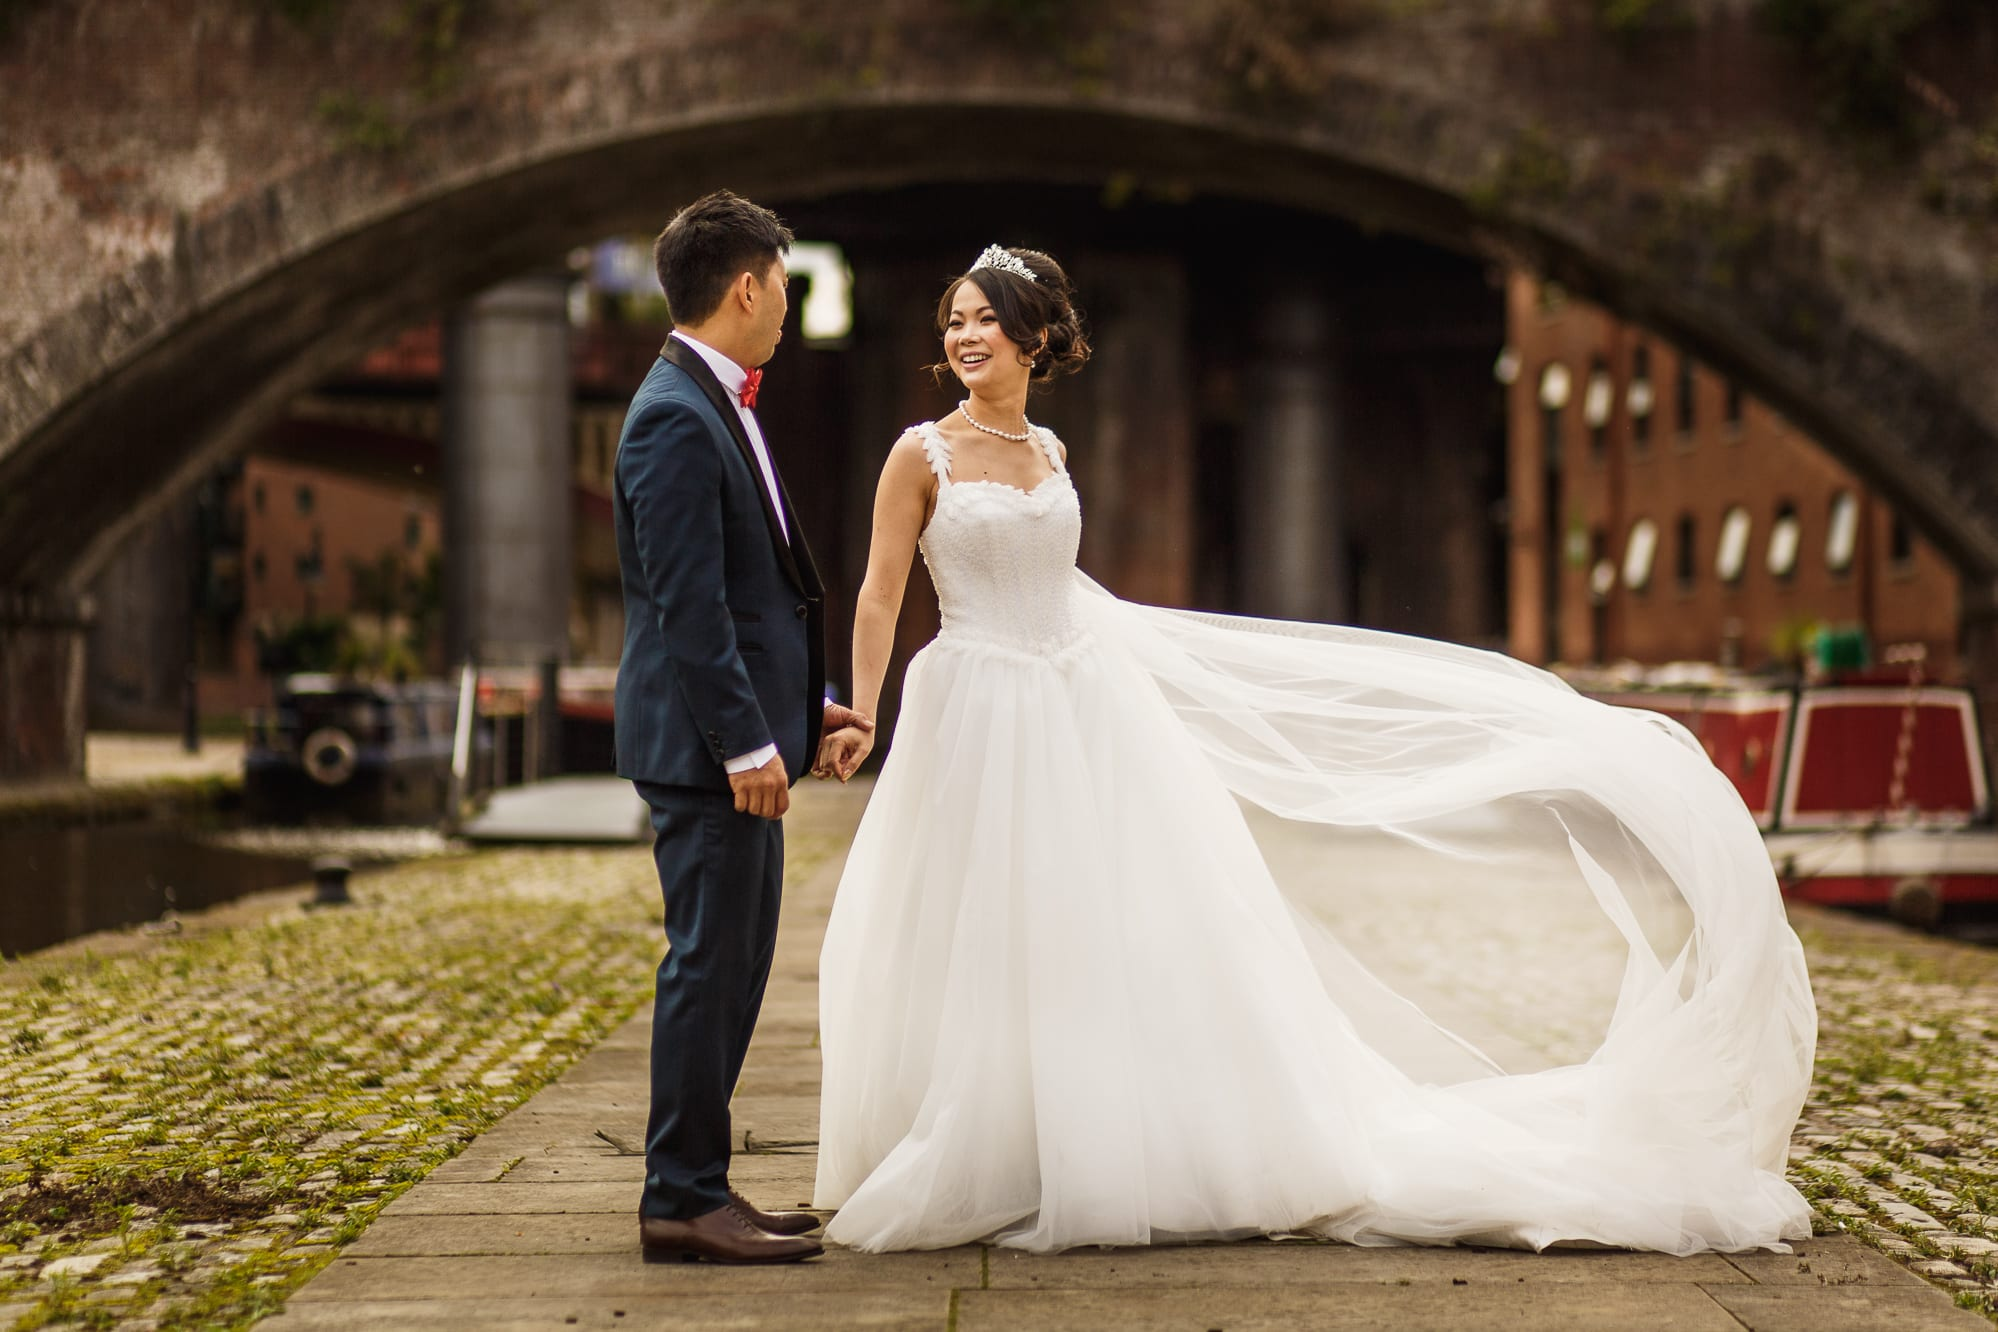 Bride and groom with lovely dress flowing in wind